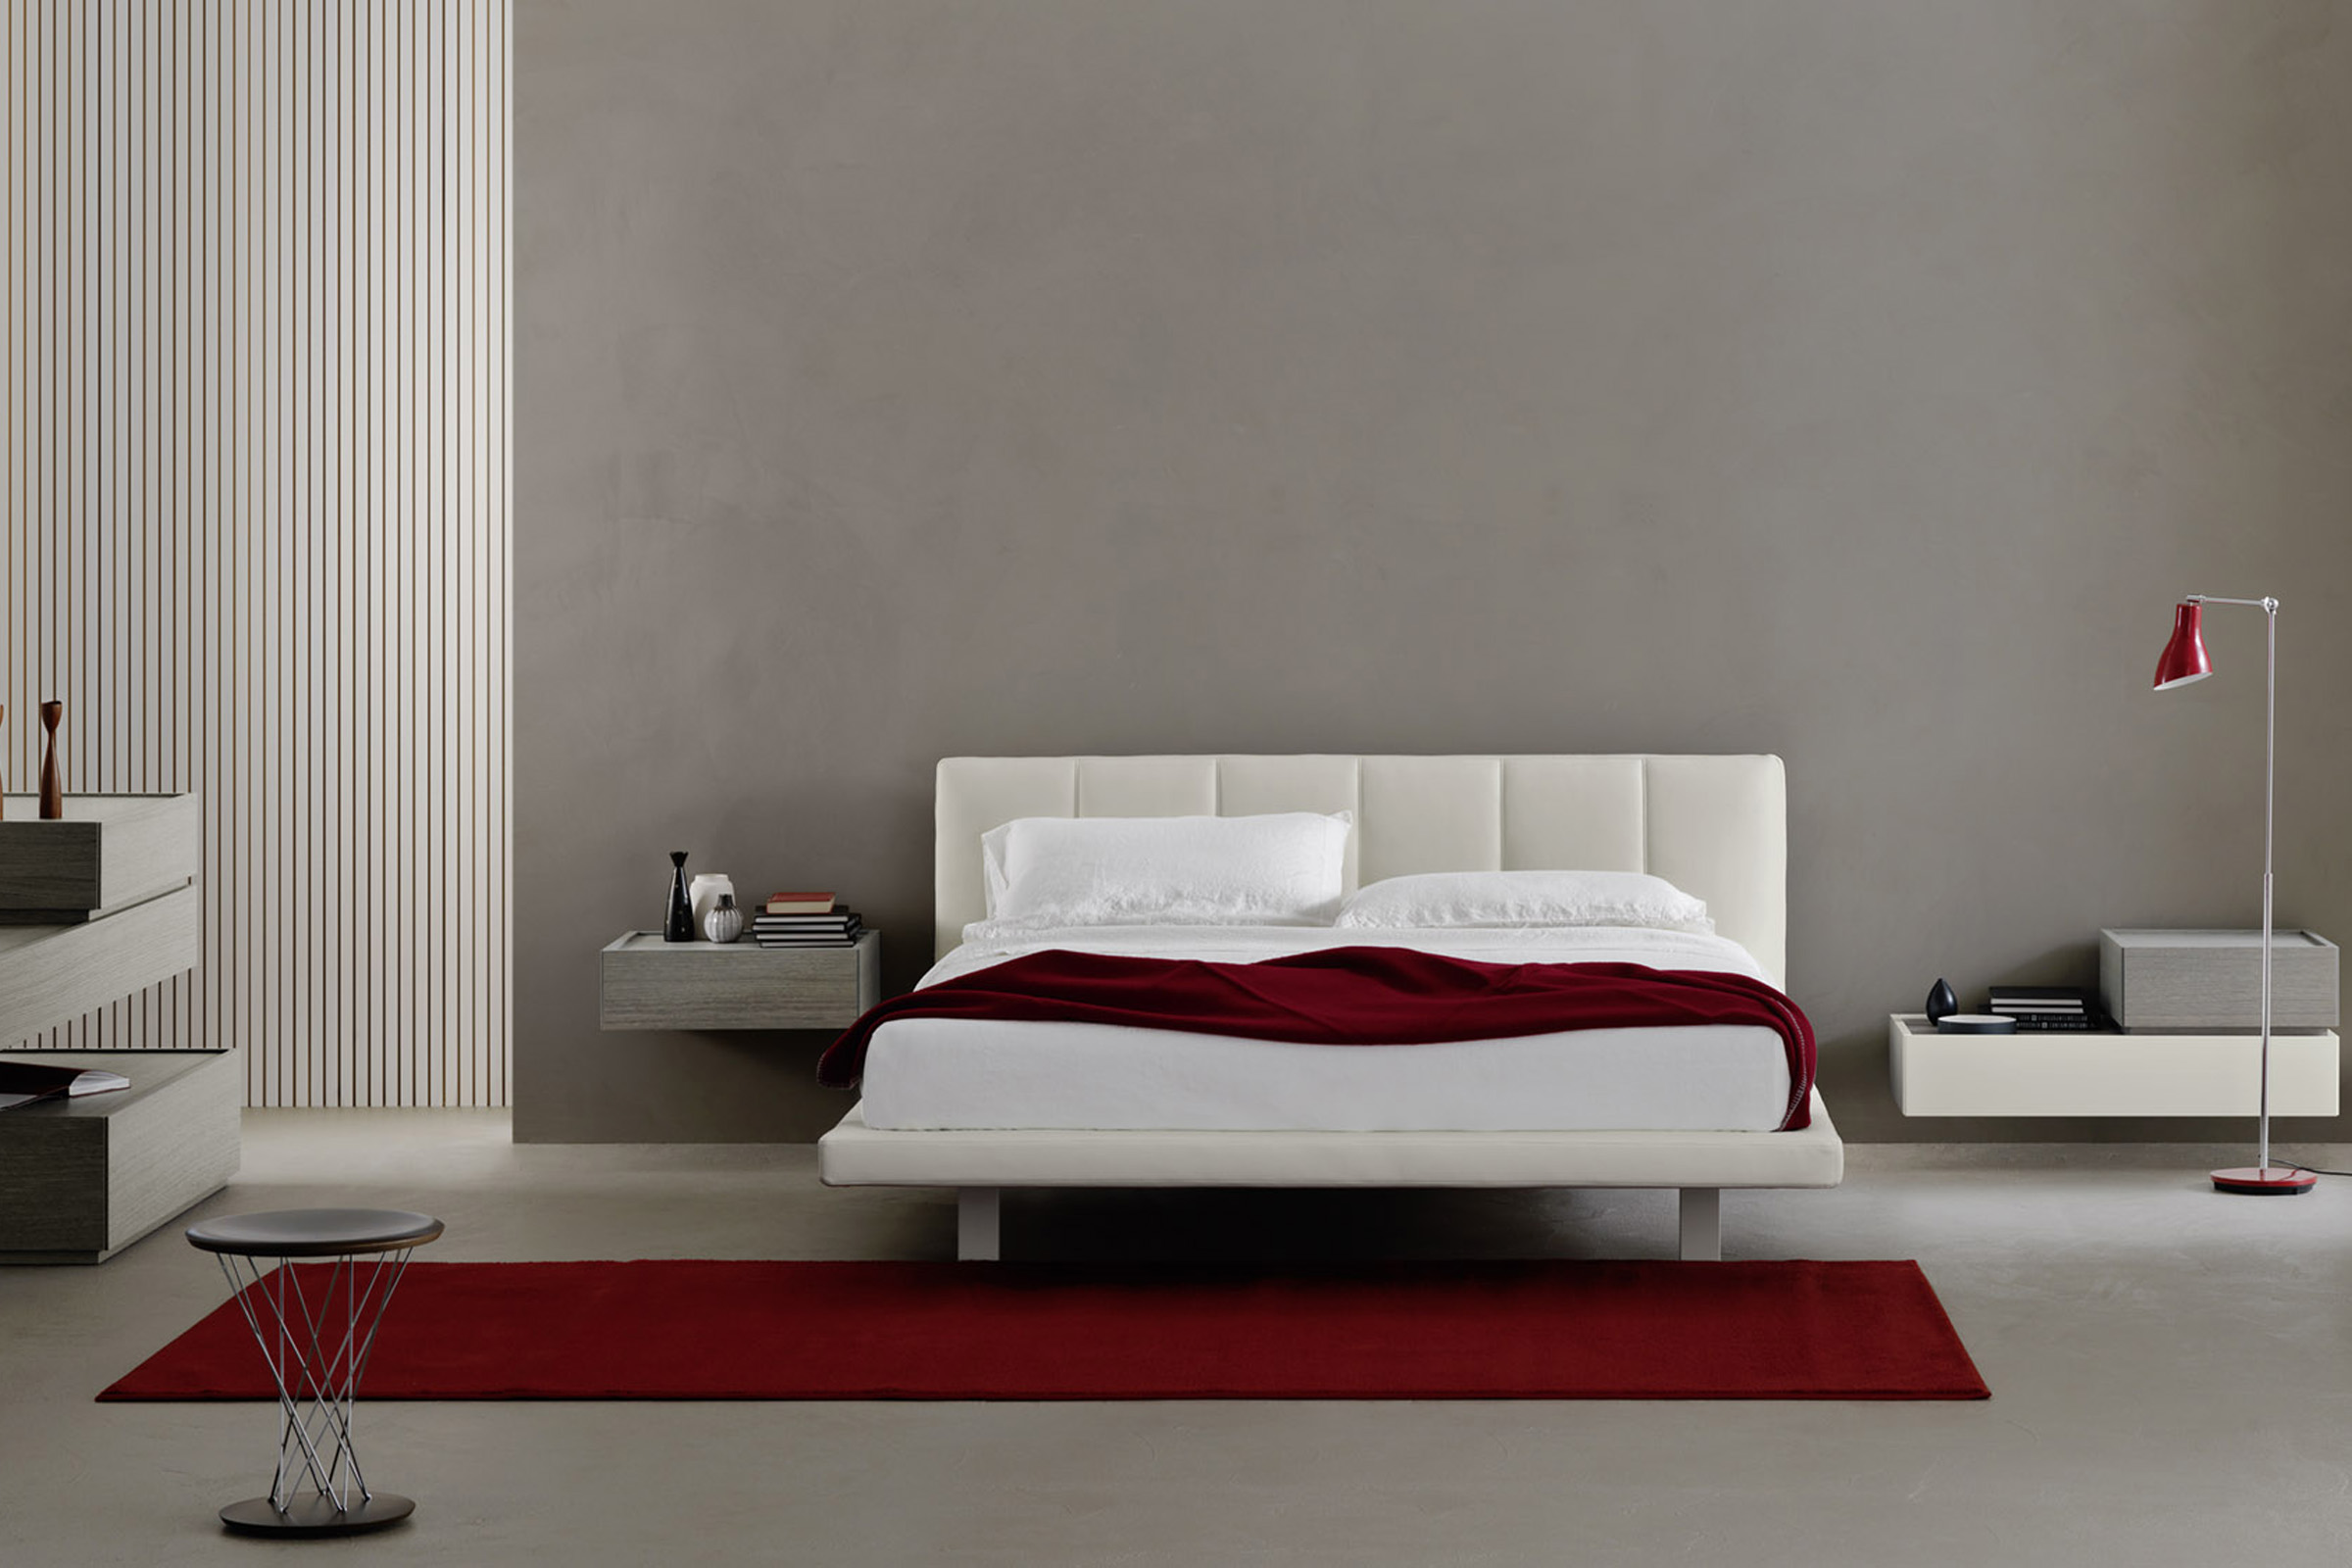 Letto moderno awesome letto sacco pianca with letto moderno